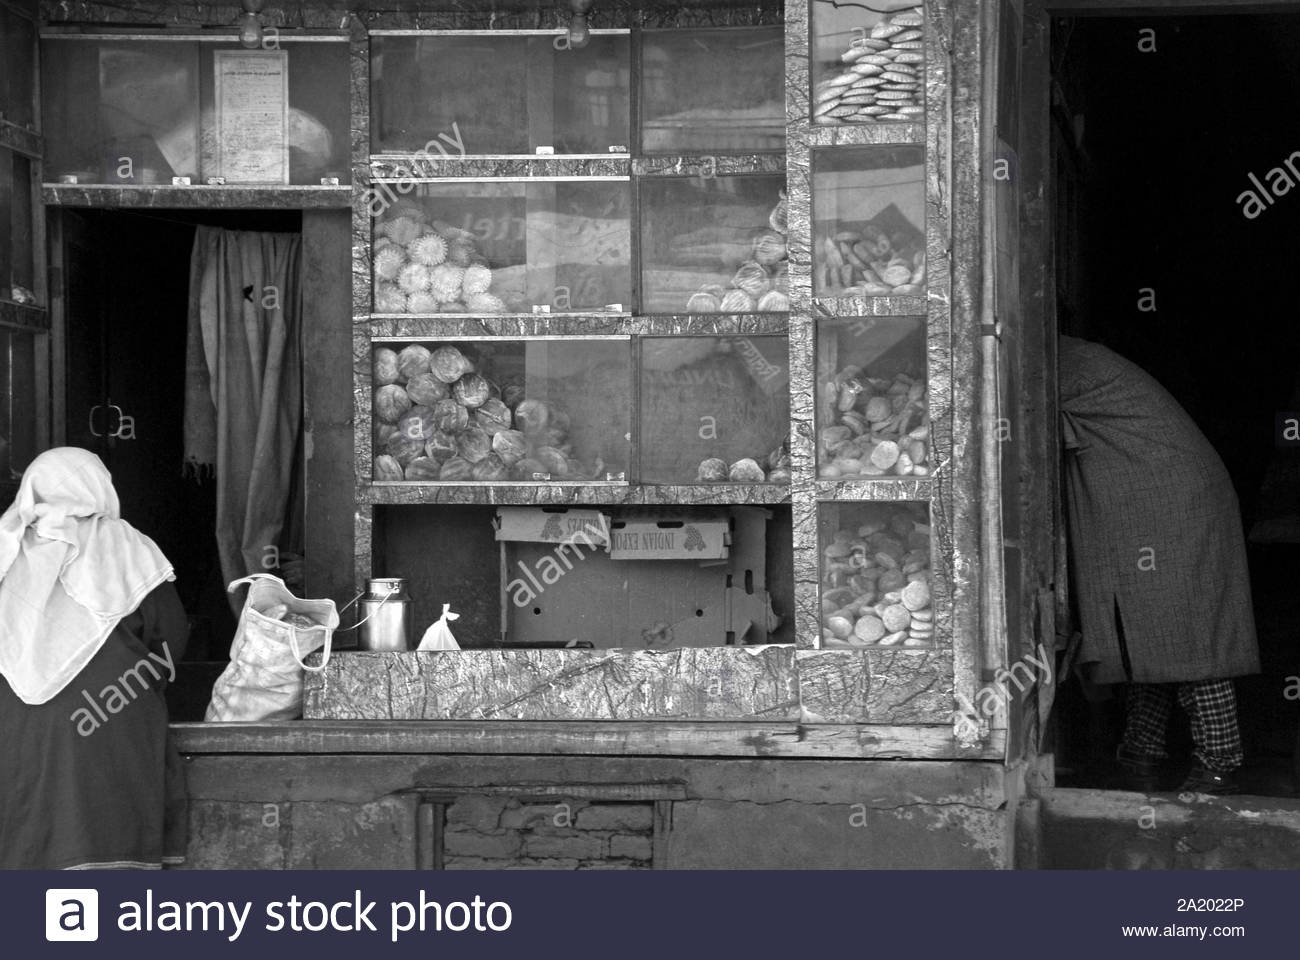 Kashmir, India.  March 12, 2014. Stock Photo